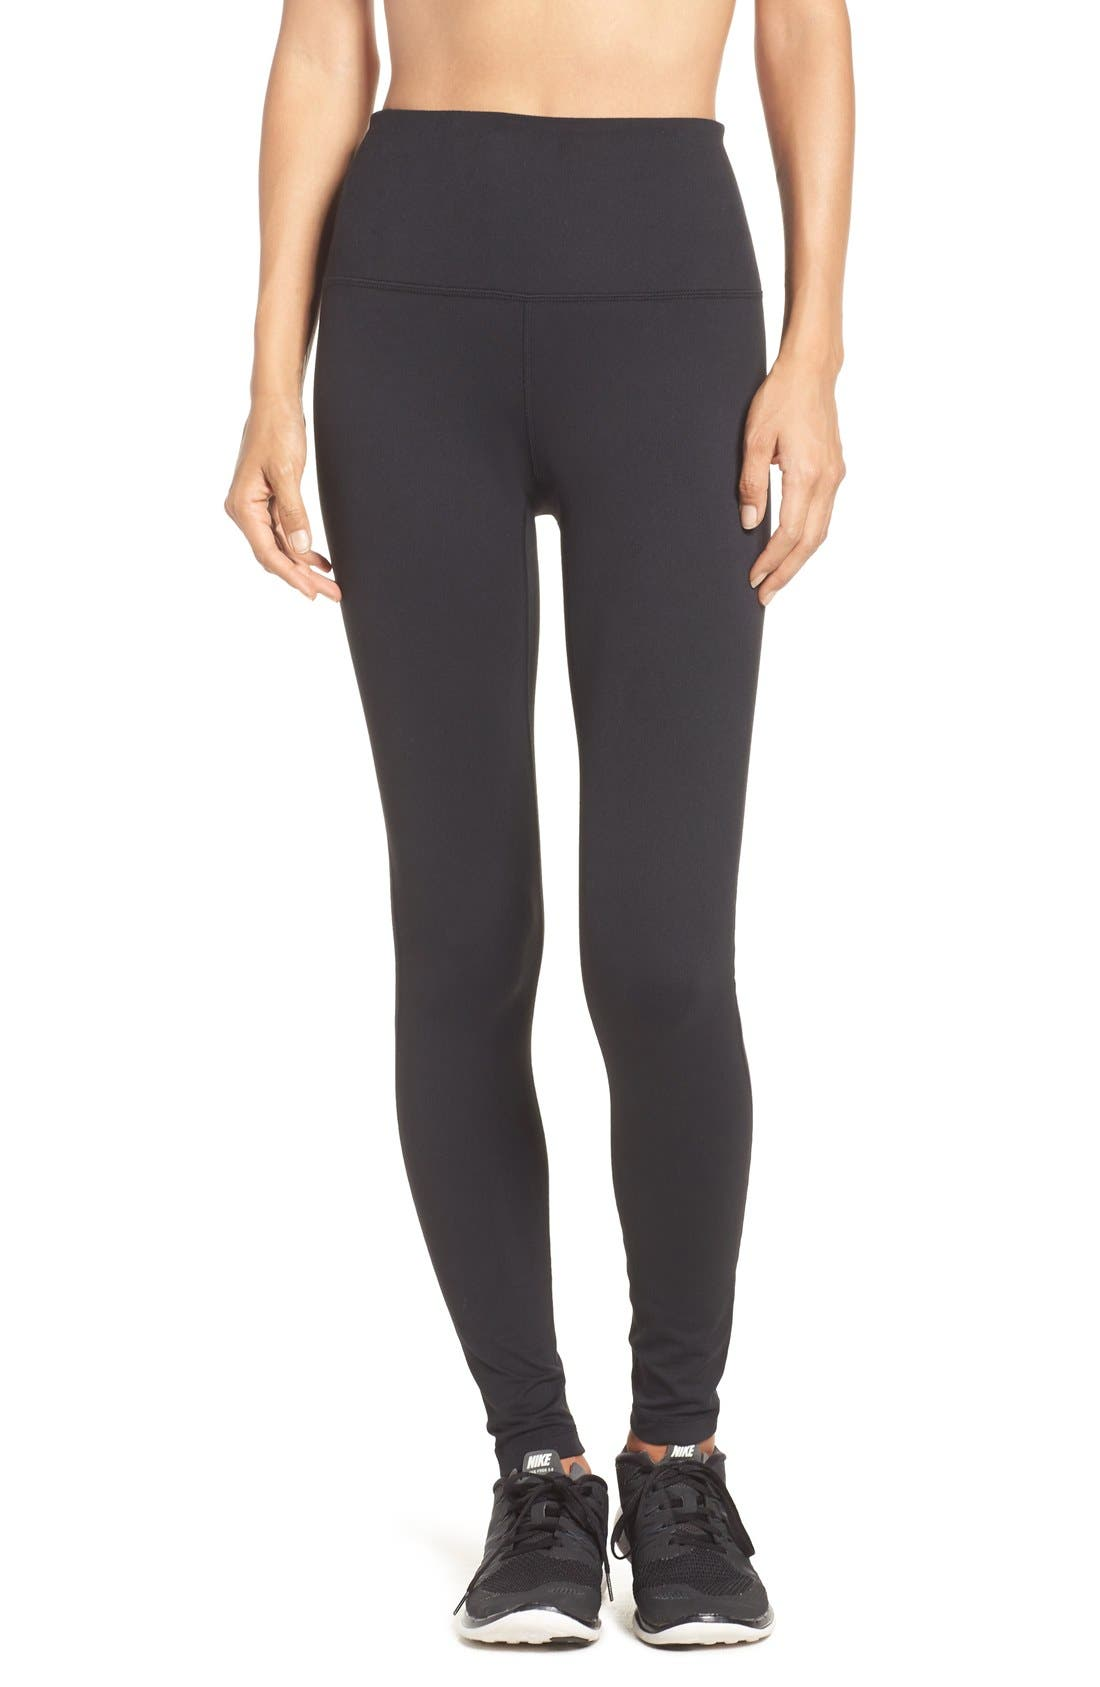 Main Image - Zella Live In High Waist Leggings